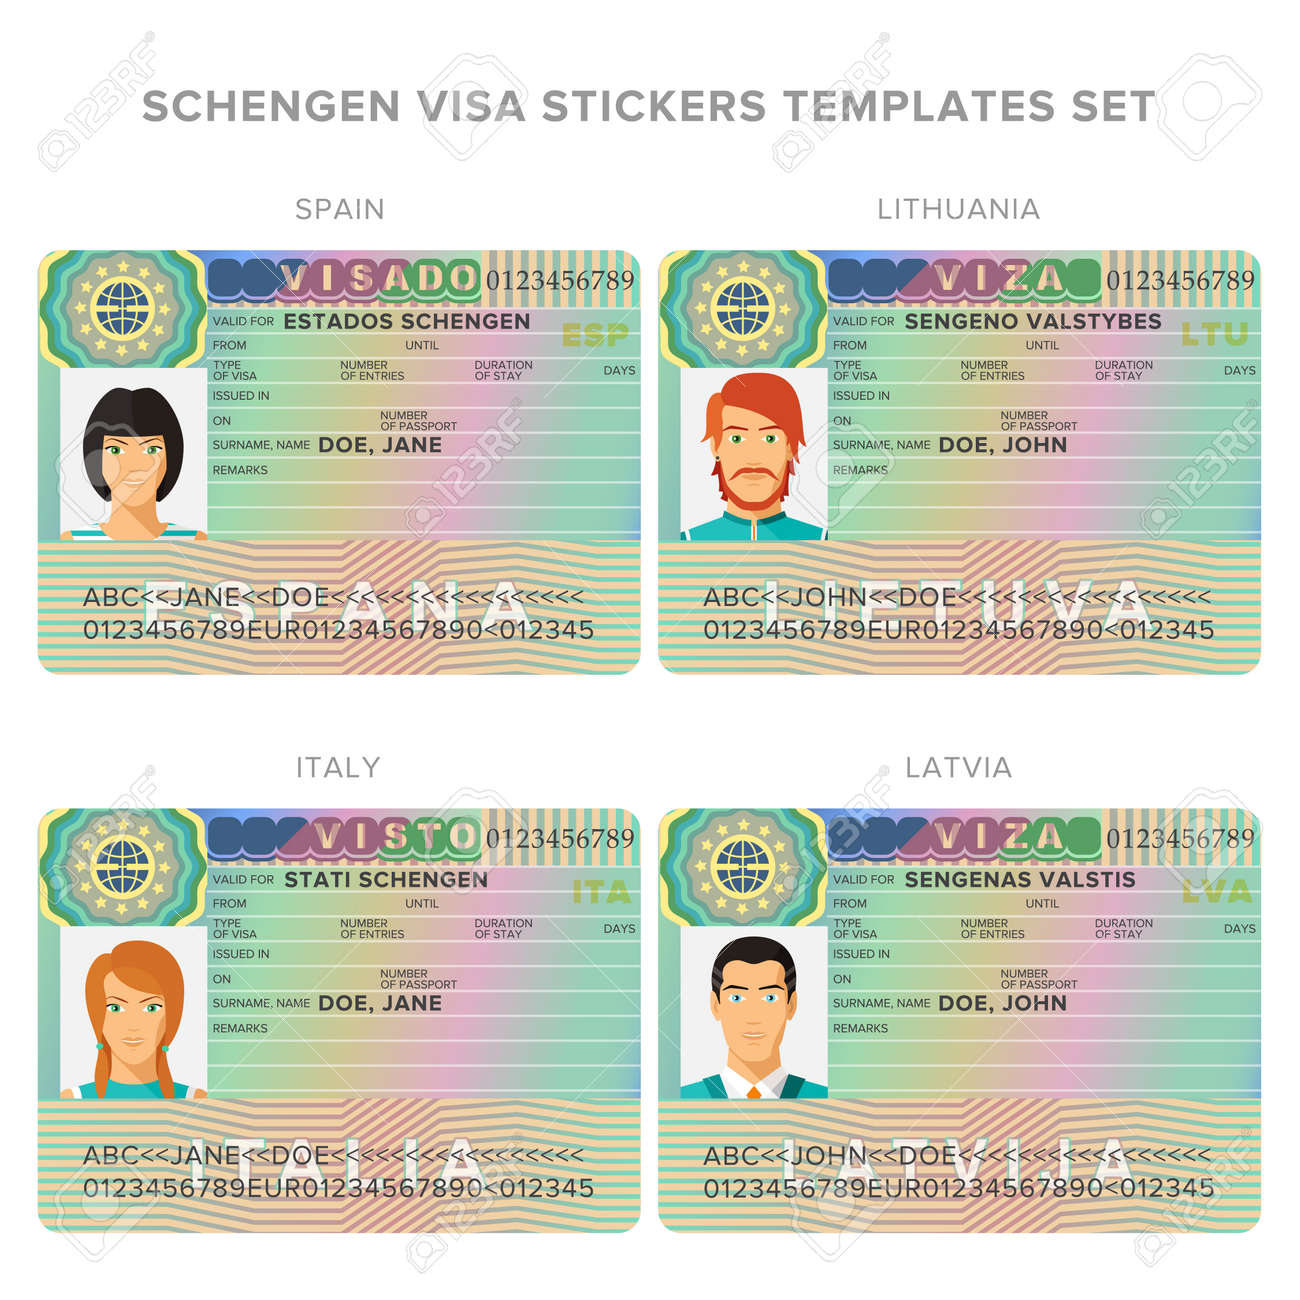 Passport Schengen Vectors Templates Image Stock Illustration And Cliparts Royalty Lithuania Sticker For Visa Free 75200257 Spain